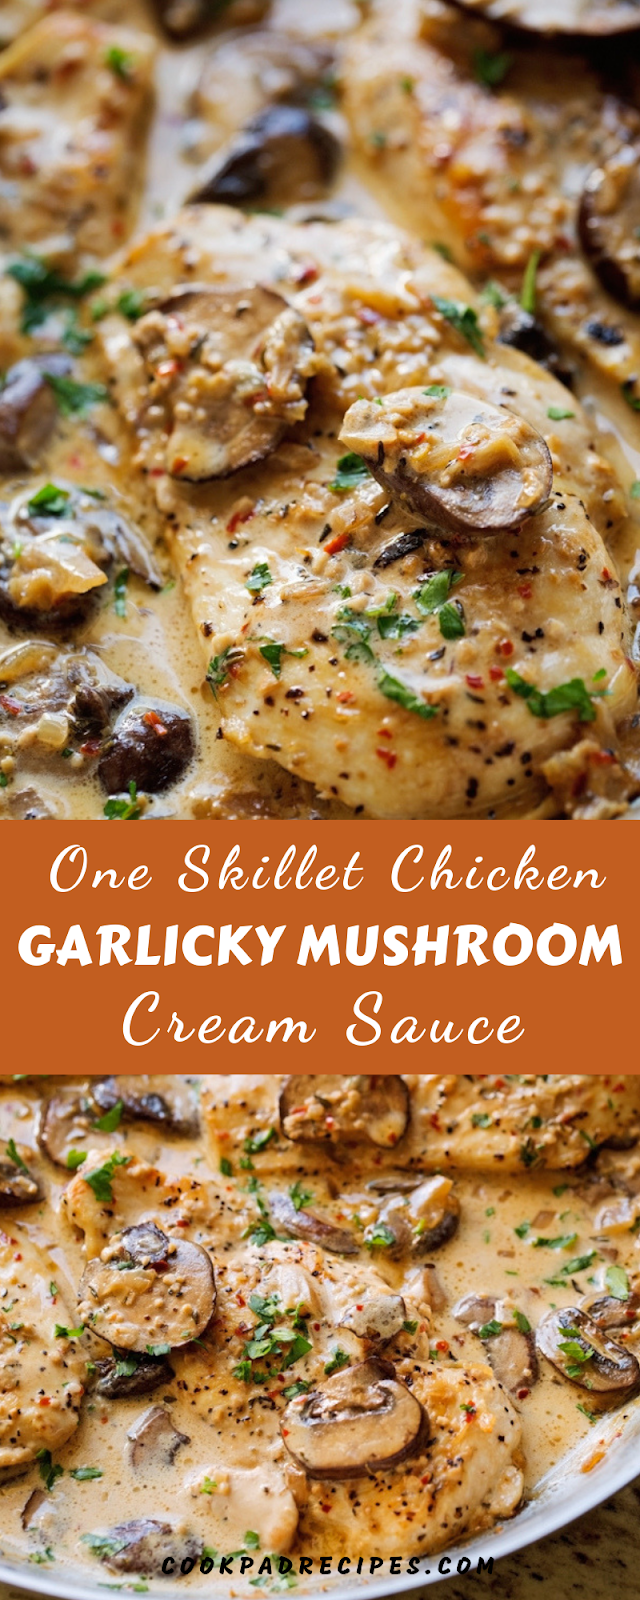 ONE SKILLET CHICKEN WITH GARLICKY MUSHROOM CREAM SAUCE